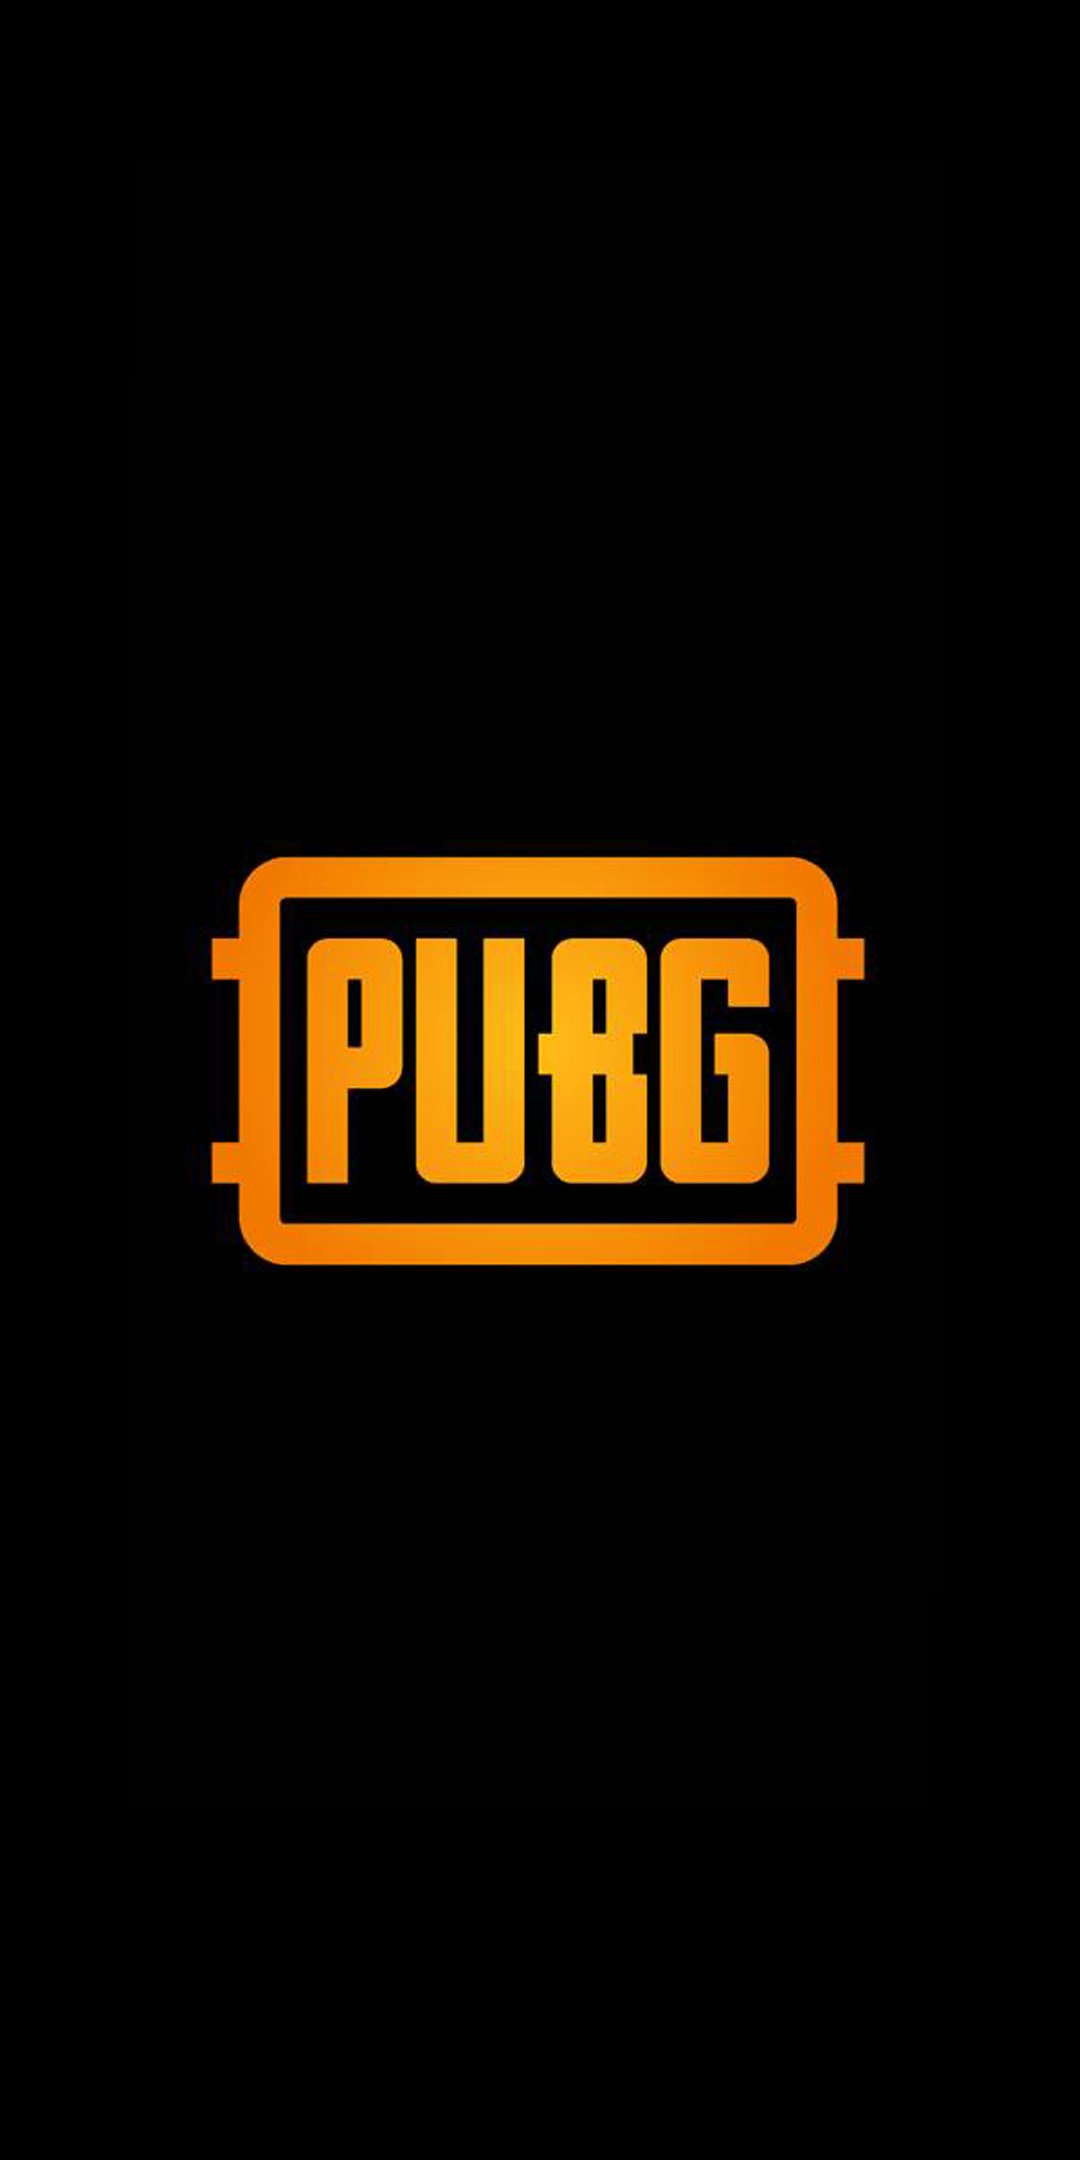 Pubg Full Hd Wallpaper For Android Hack Pubg Mobile 08 0